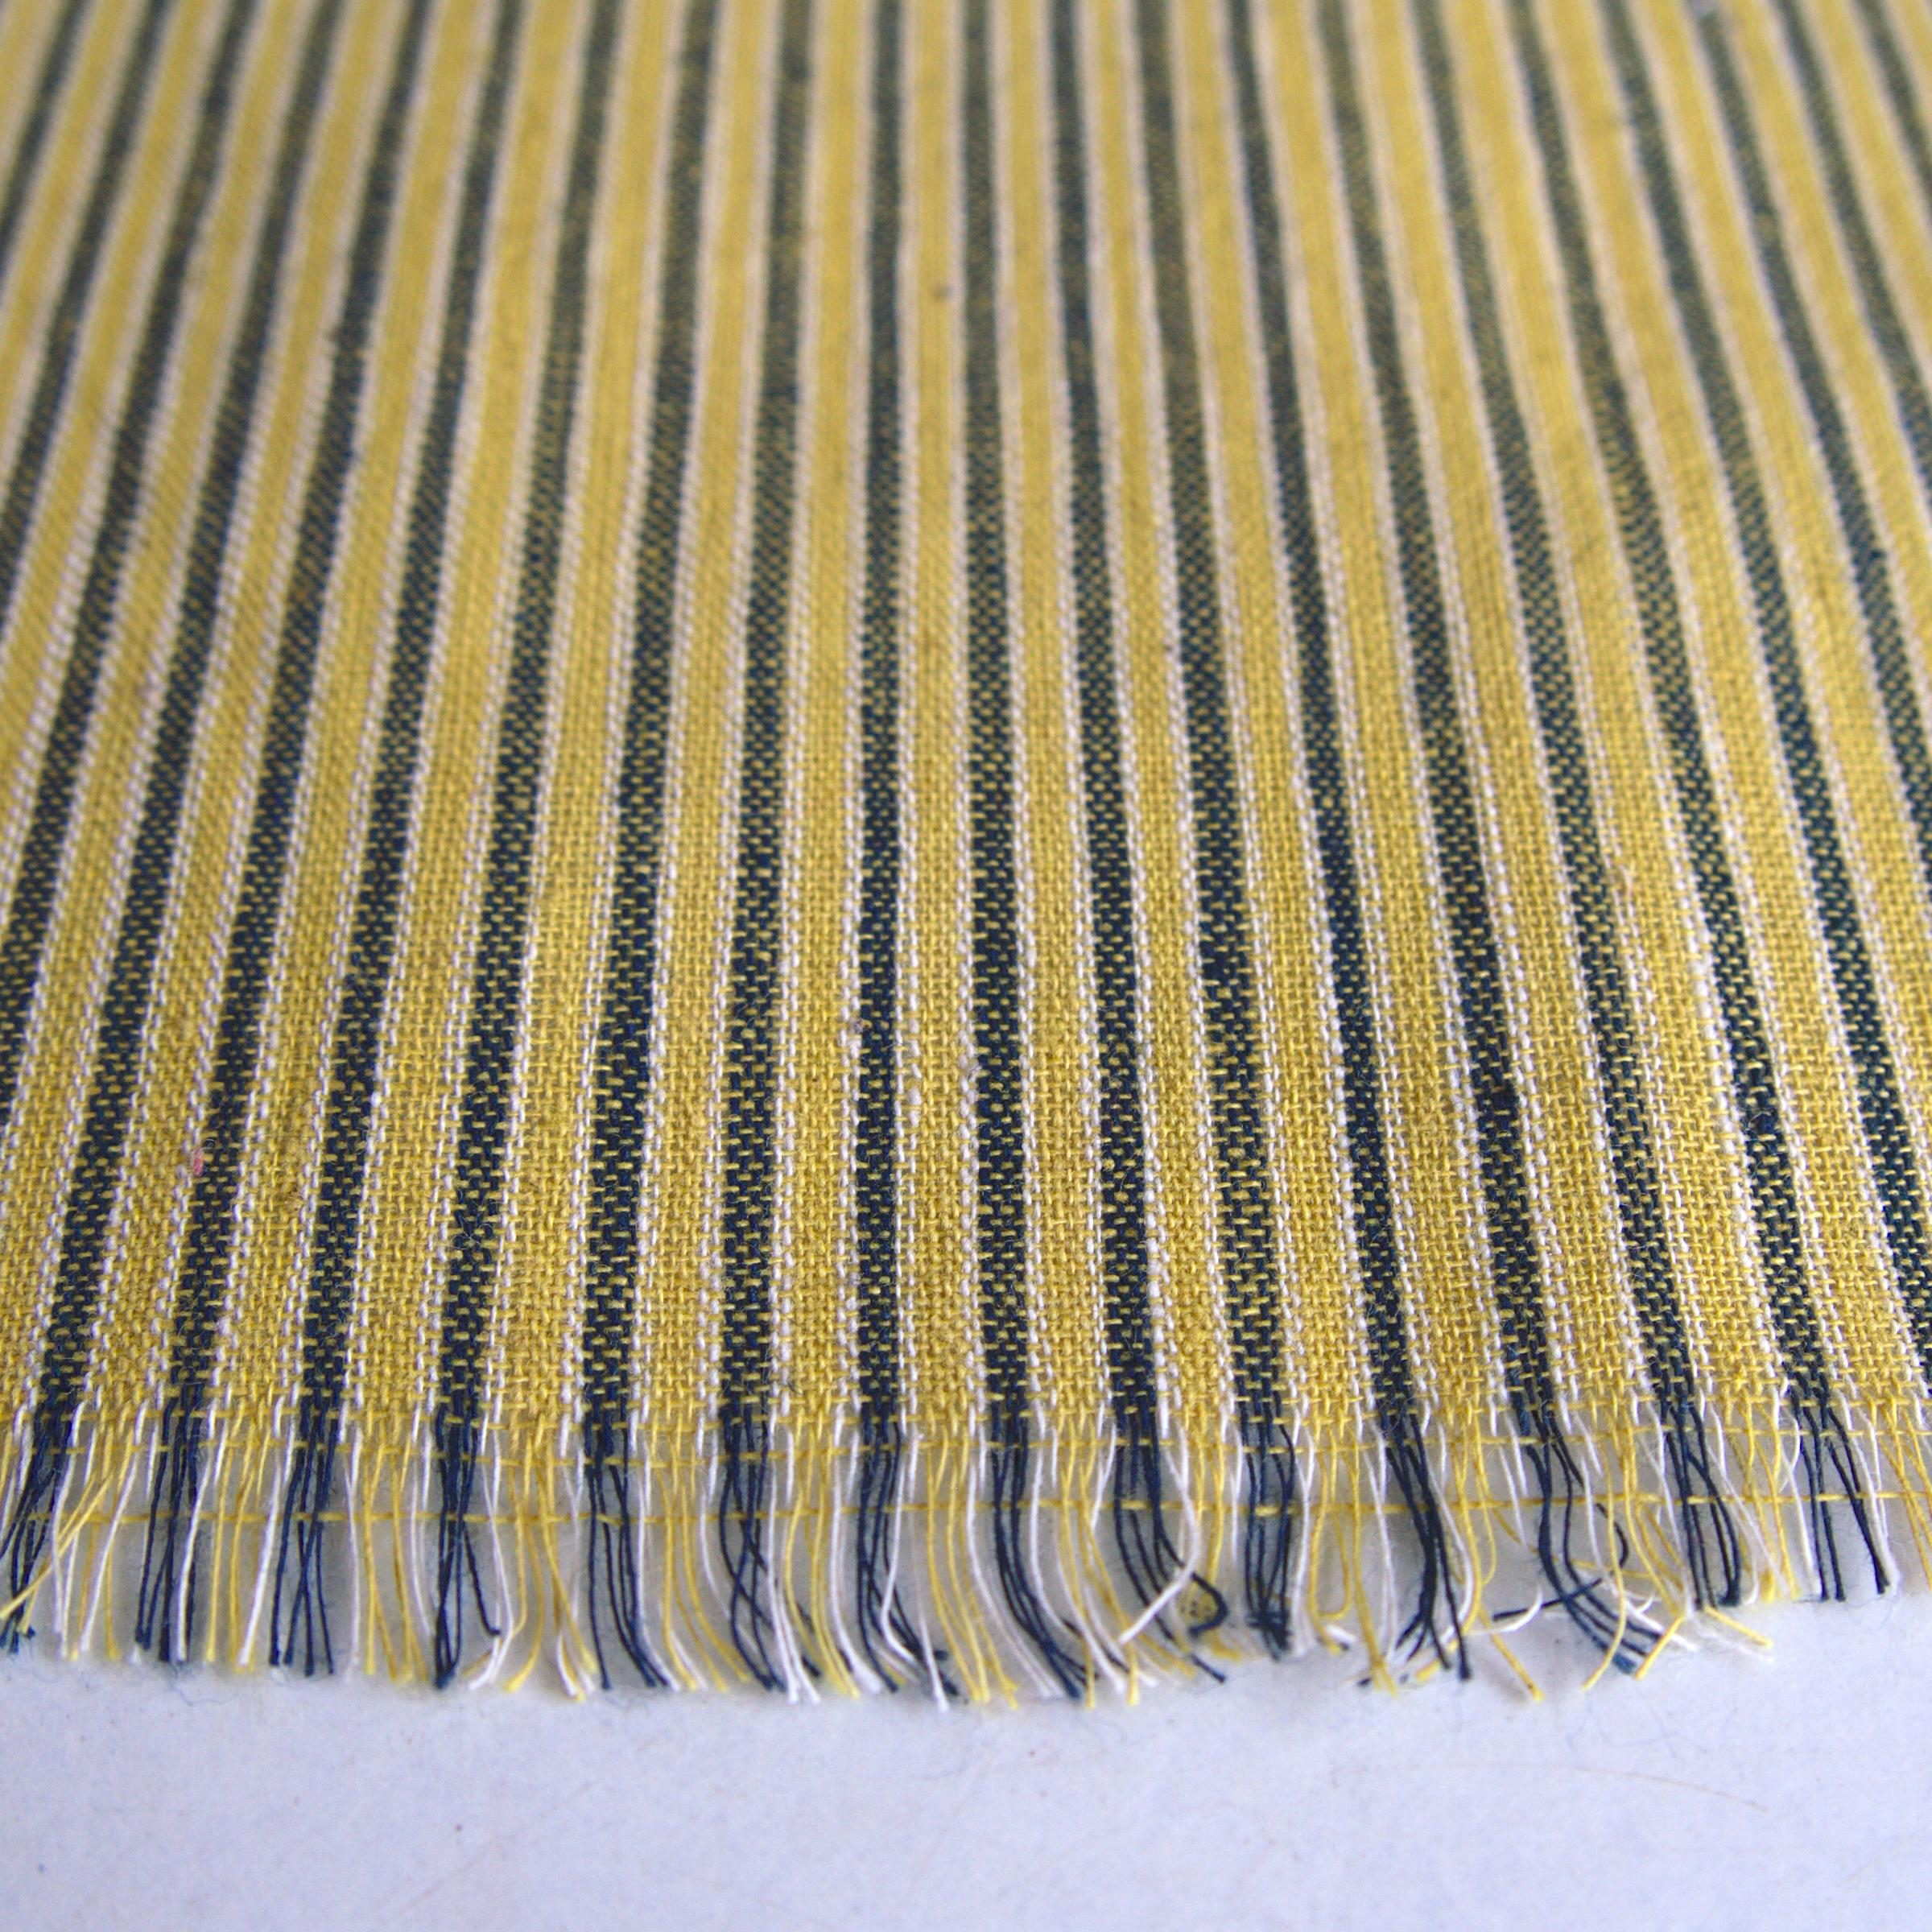 100% Handloom Cotton - Stripes - Pomegranate Yellow Warp & Weft, White and Indigo Warp - Close Up